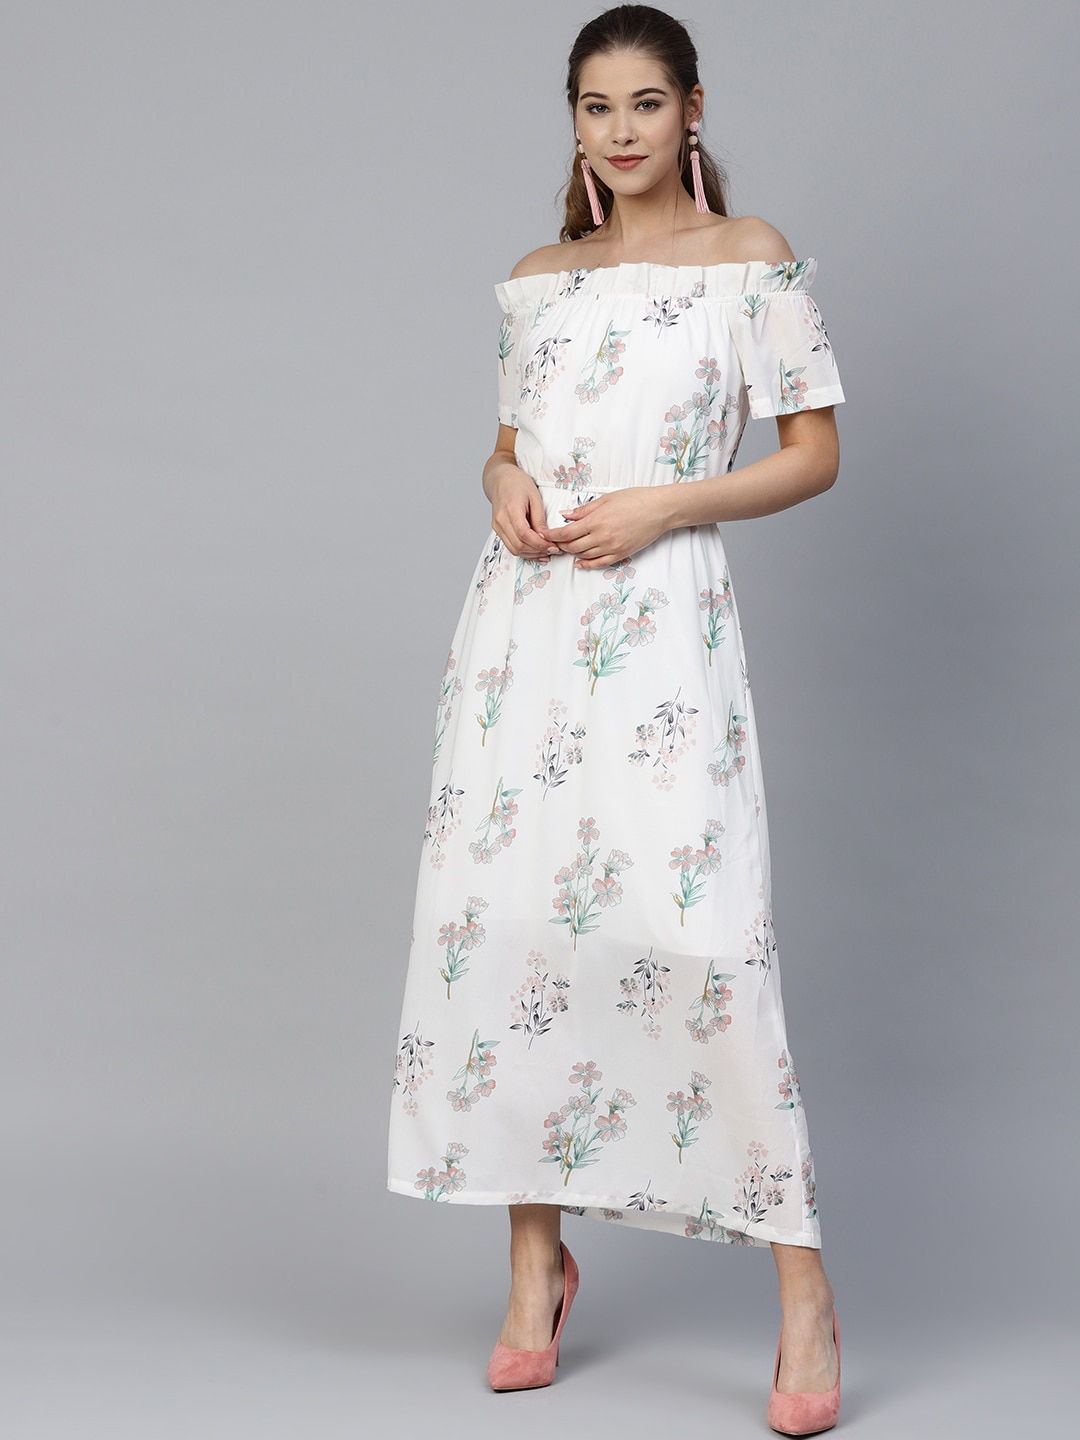 2bea4db6f46 One Piece Dress - Buy One Piece Dresses for Women Online in India